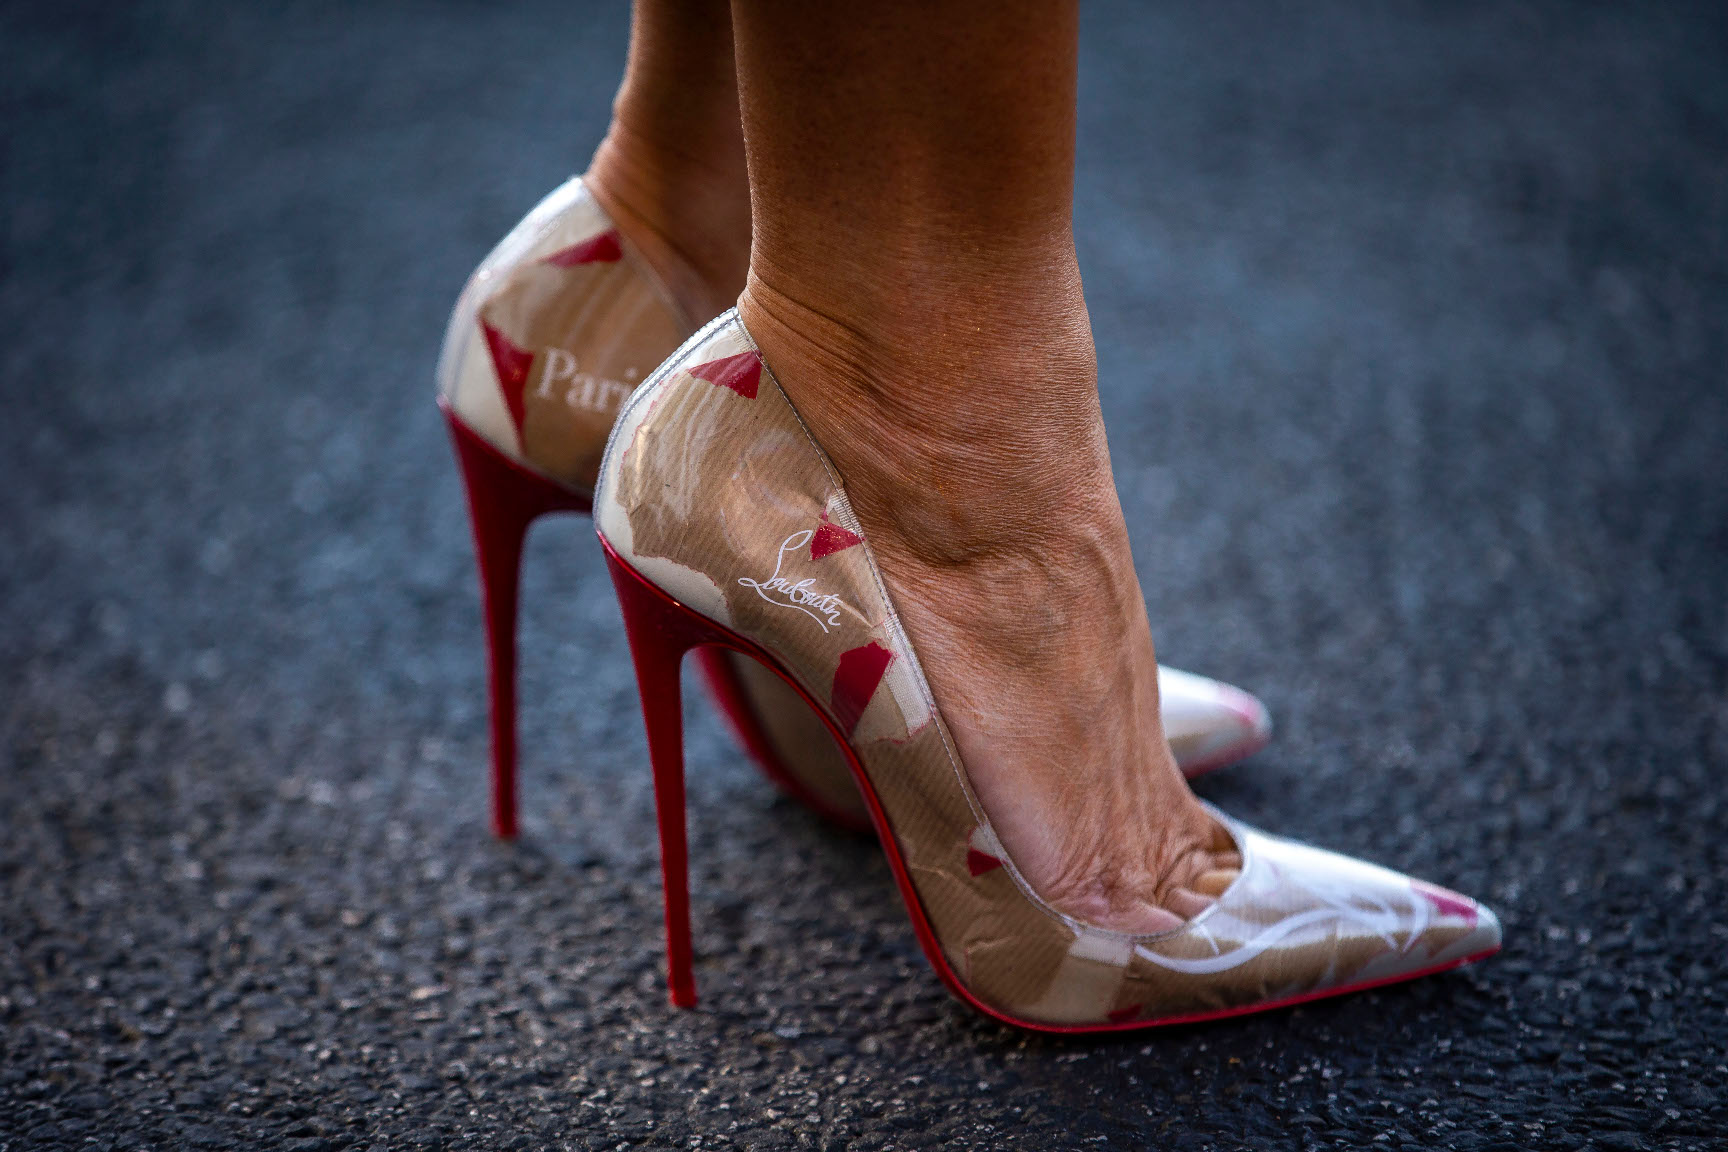 WASHINGTON, DC - JULY 10: The shoes of First lady Melania Trump, on the South Lawn of the White House, on July 9, 2018 in Washington, DC. Trump is heading to Brussels for the NATO Summit. (Photo by Al Drago/Getty Images)